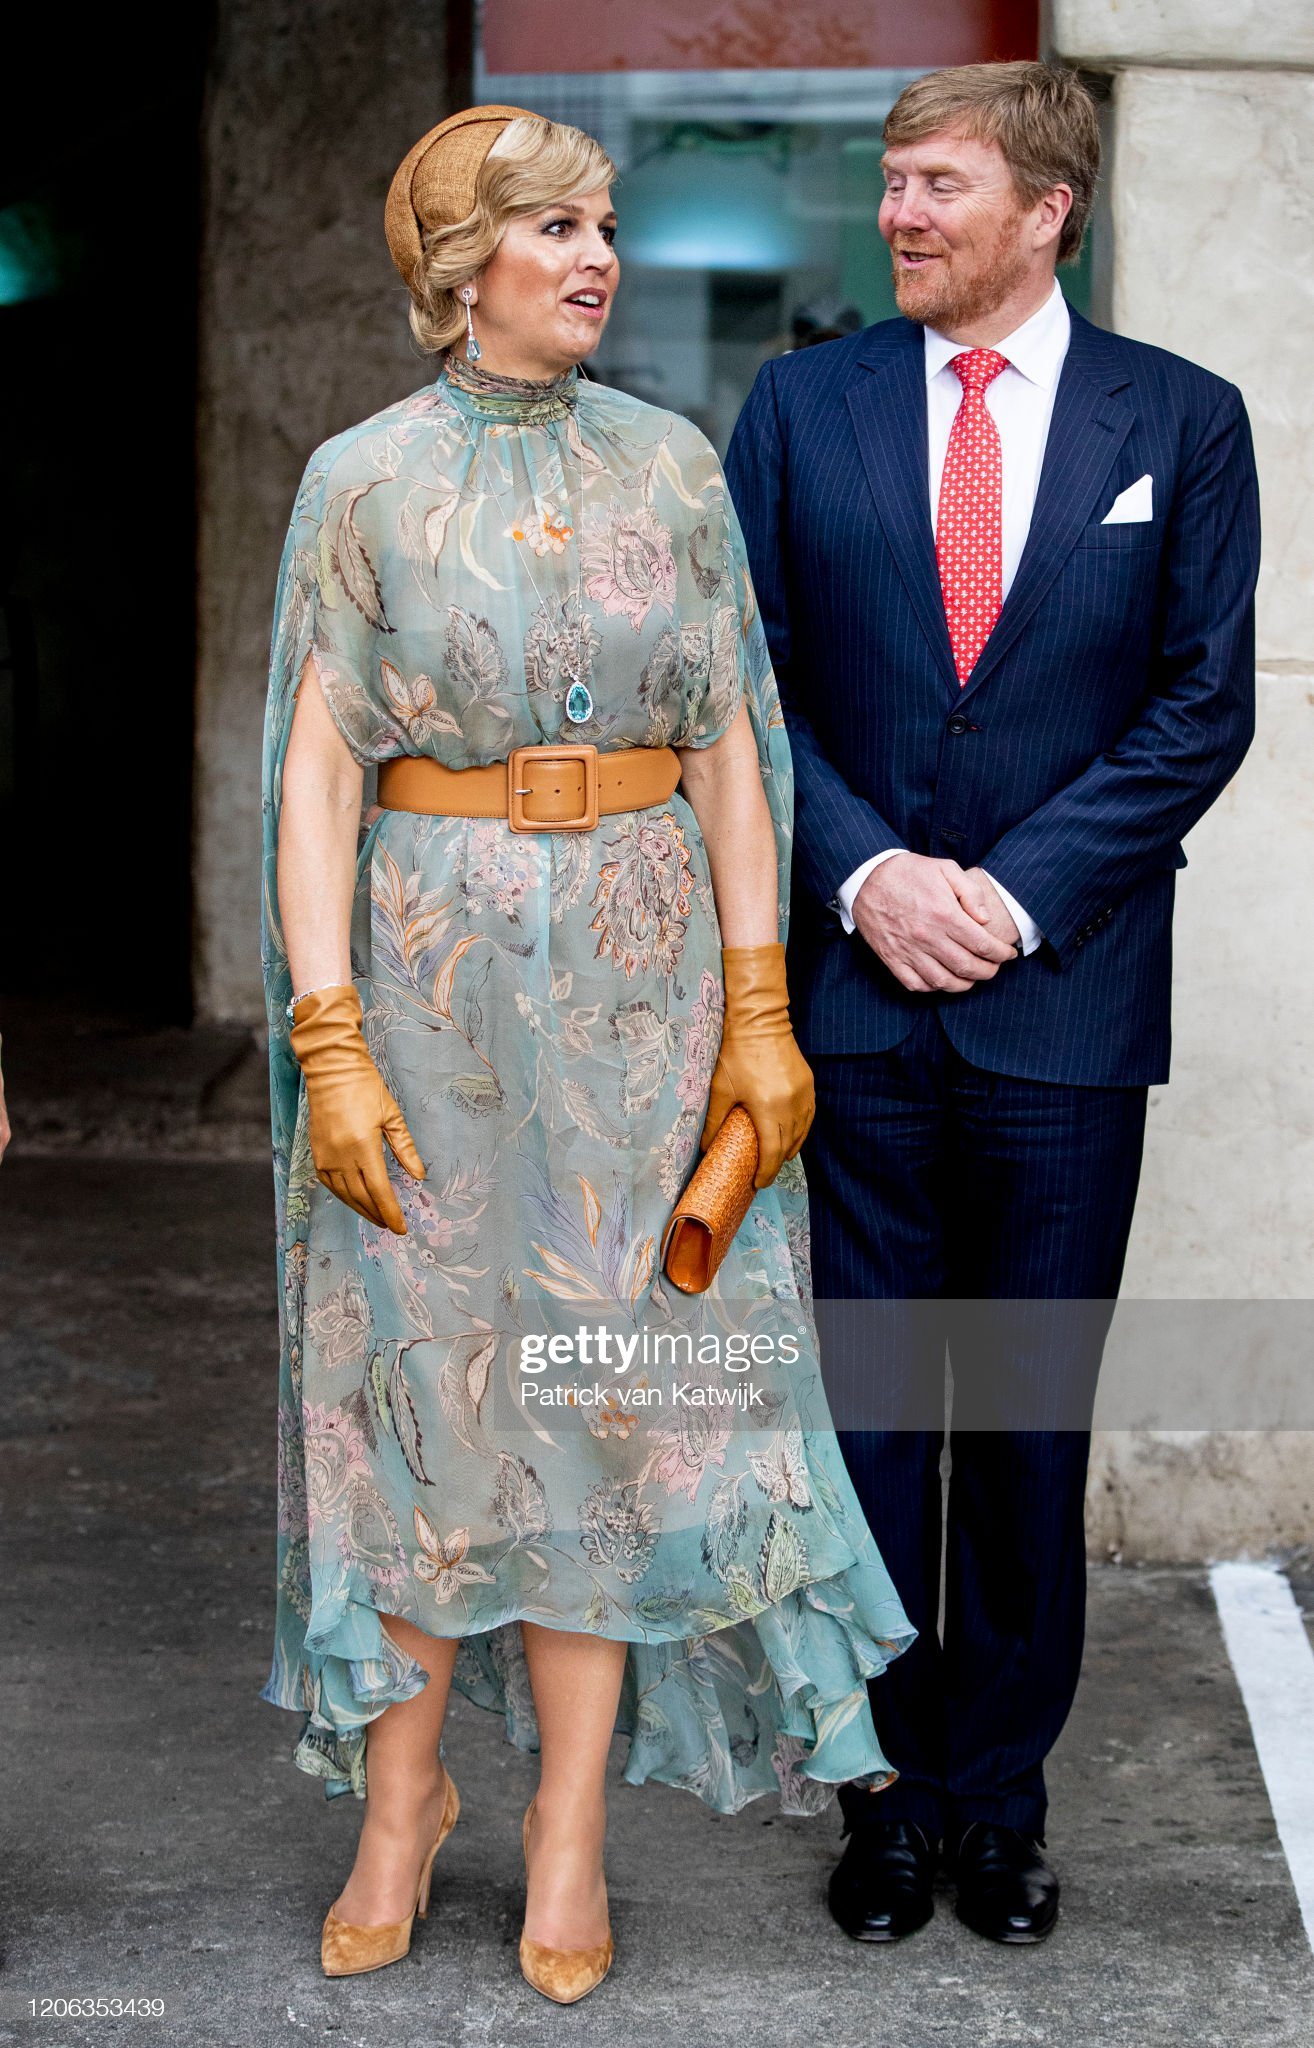 https://media.gettyimages.com/photos/king-willemalexander-of-the-netherlands-and-queen-maxima-of-the-picture-id1206353439?s=2048x2048